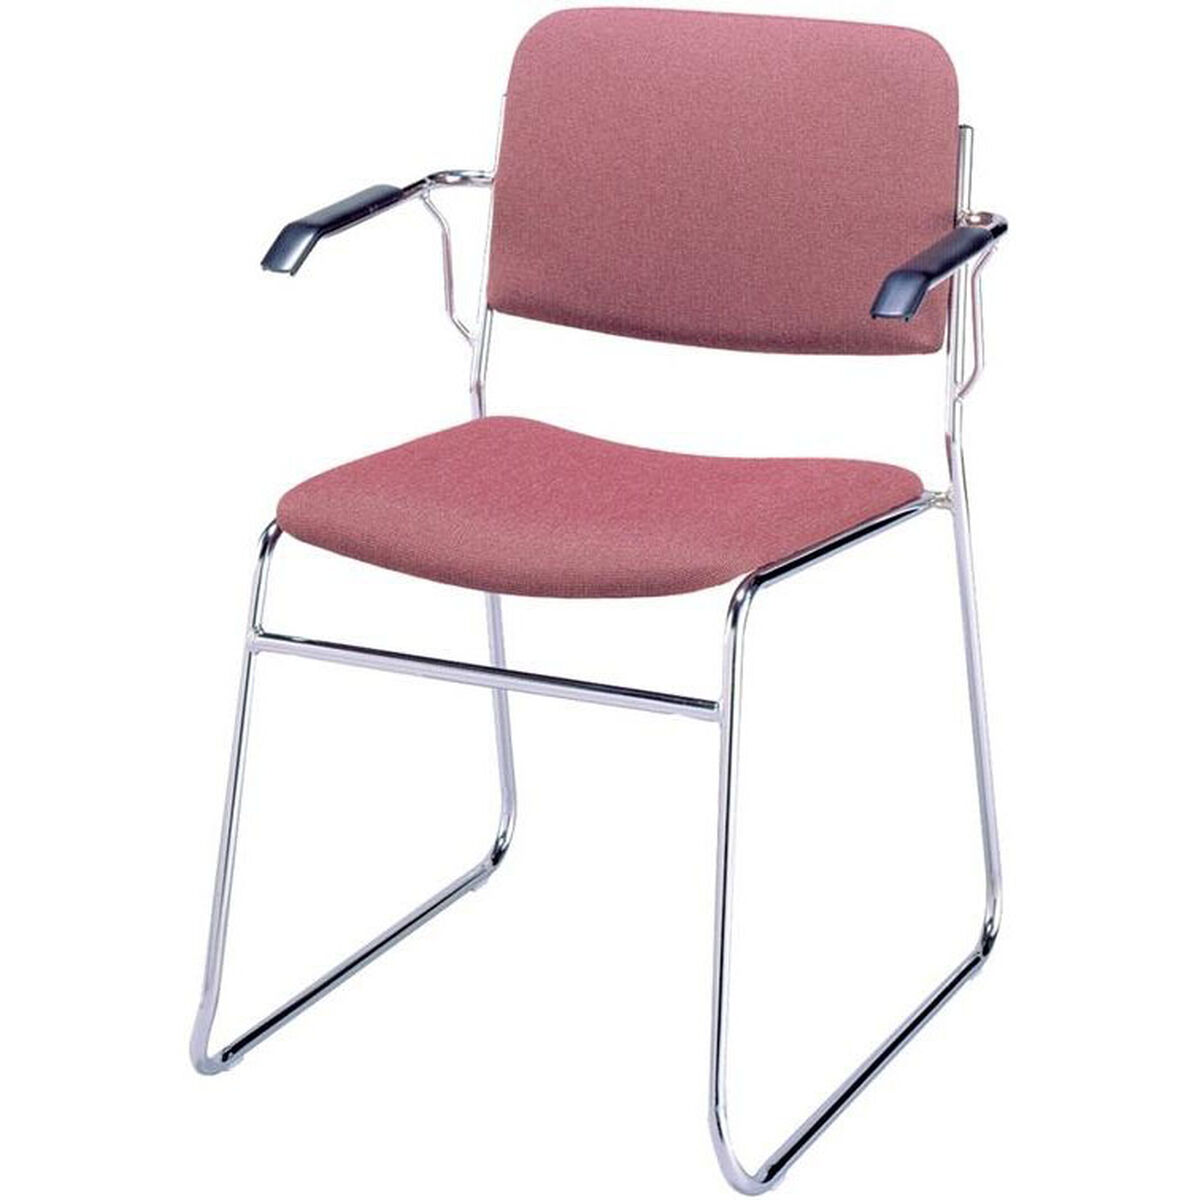 Kfi Seating 300 Series Stacking Chrome Steel Frame Guest